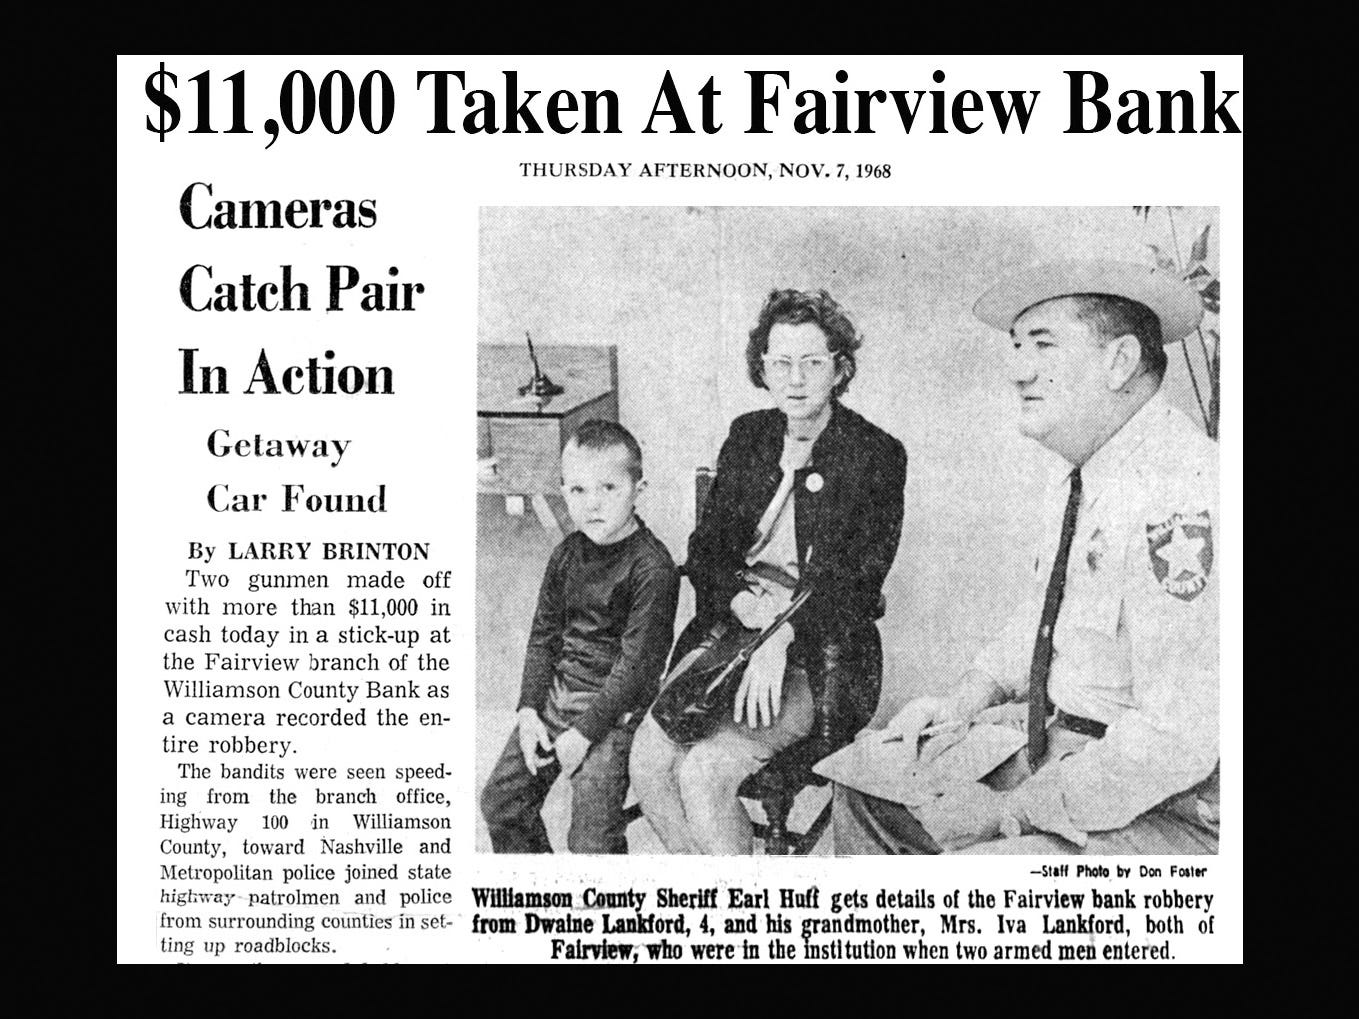 This newspaper clipping from the Nashville Banner in November 1968 reports on the robbery of the Fairview Branch of the Williamson County Bank.